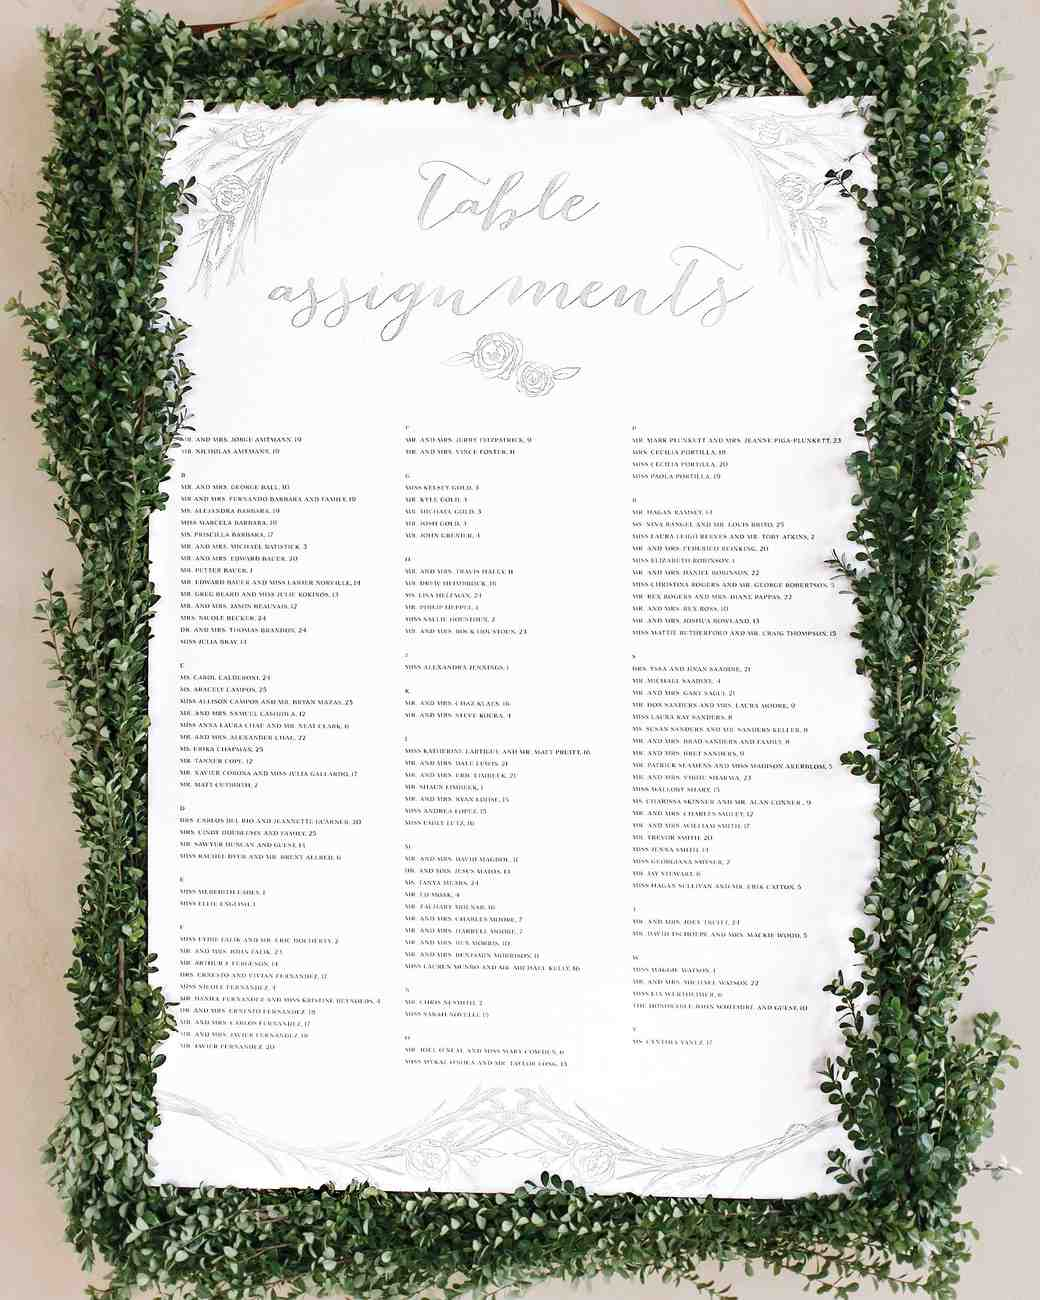 mmallory diego wedding texas reception seating chart 084 s112628_vert?itok=tZ YUHPB 25 unique wedding seating charts to guide guests to their tables